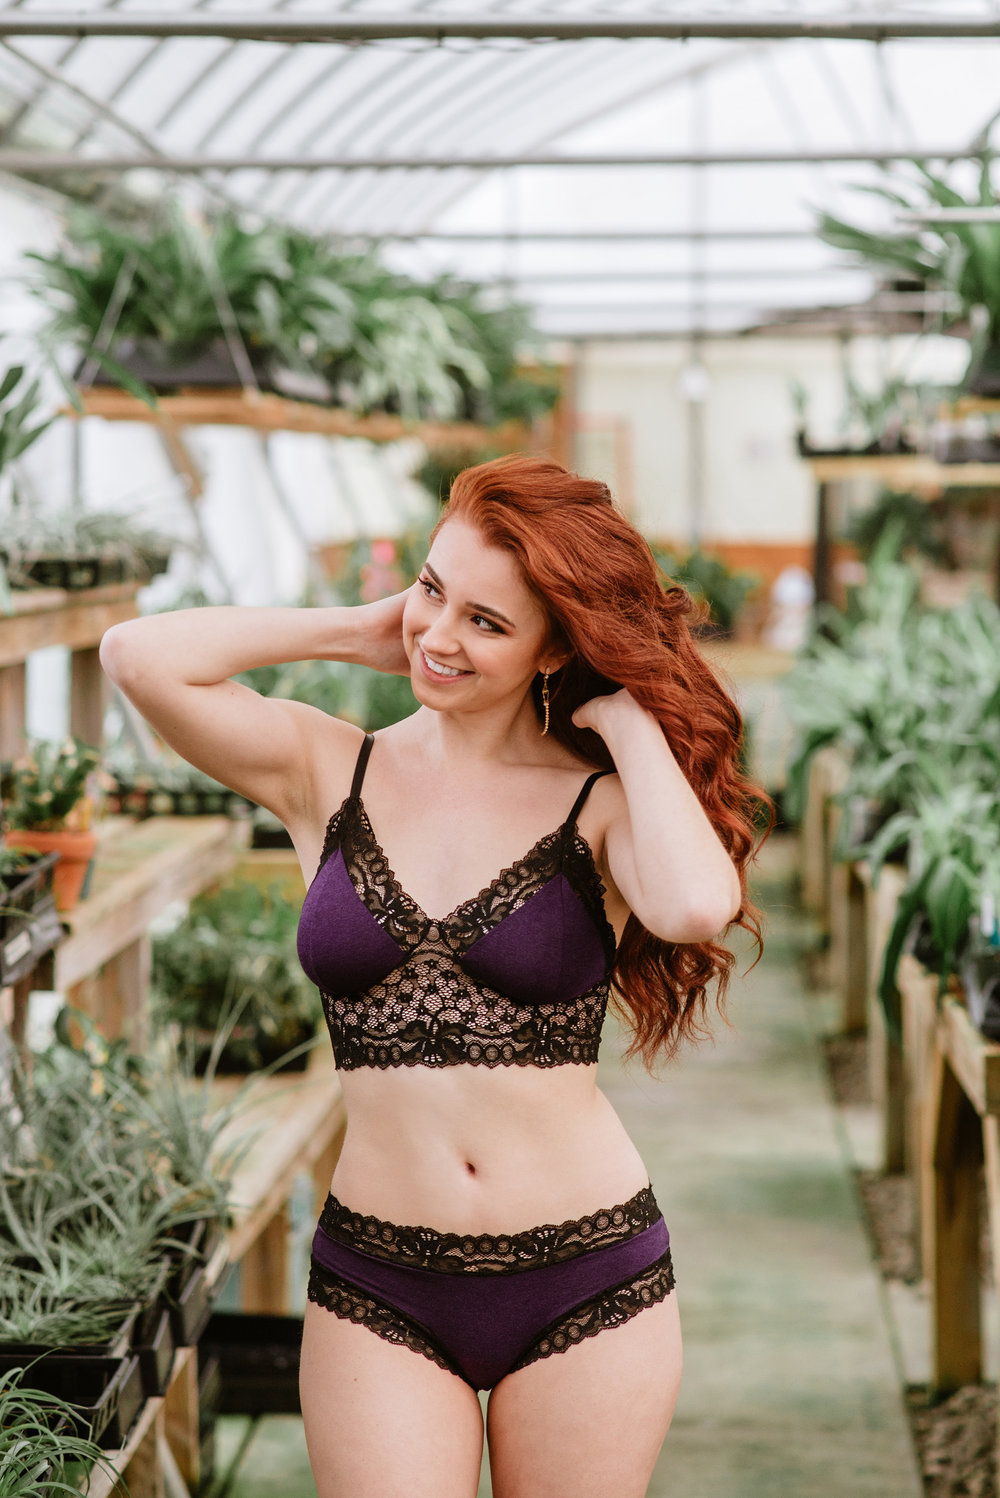 Greenhouse Boudoir Session by Sarah Hooker Photography at Appalachian Tropicals featuring On the Inside Lingerie